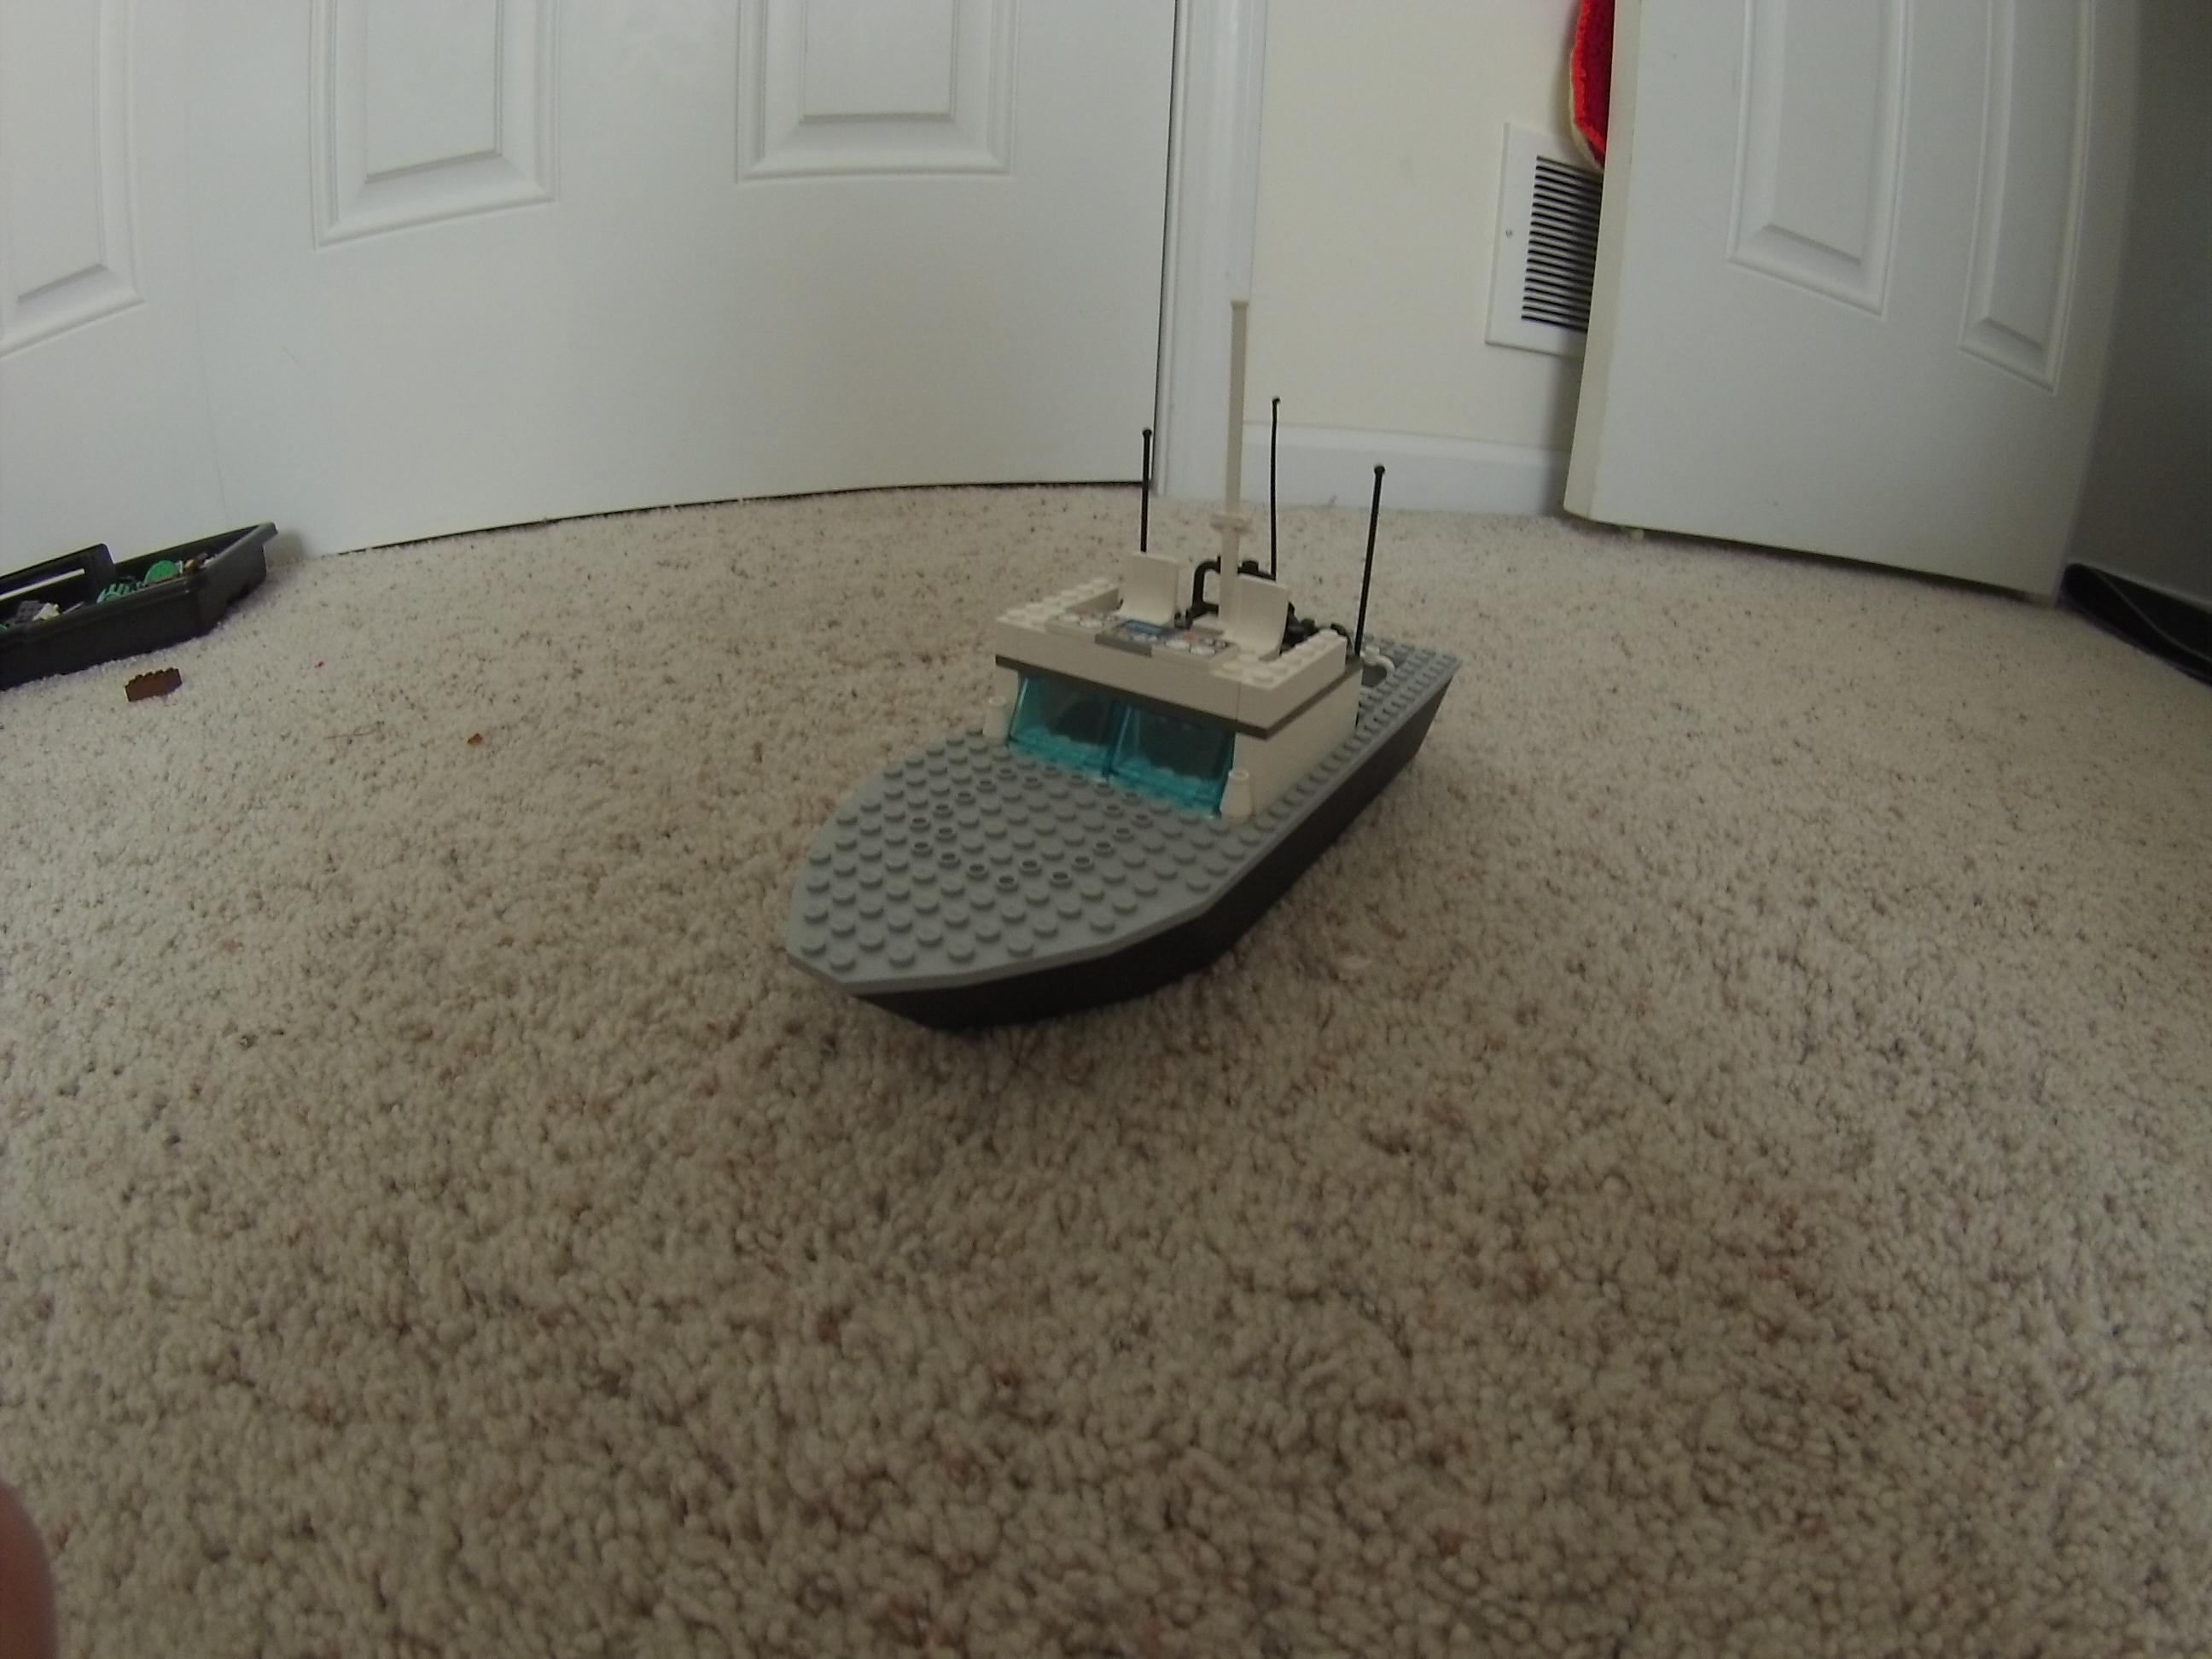 Picture of Lego Fishing Boat